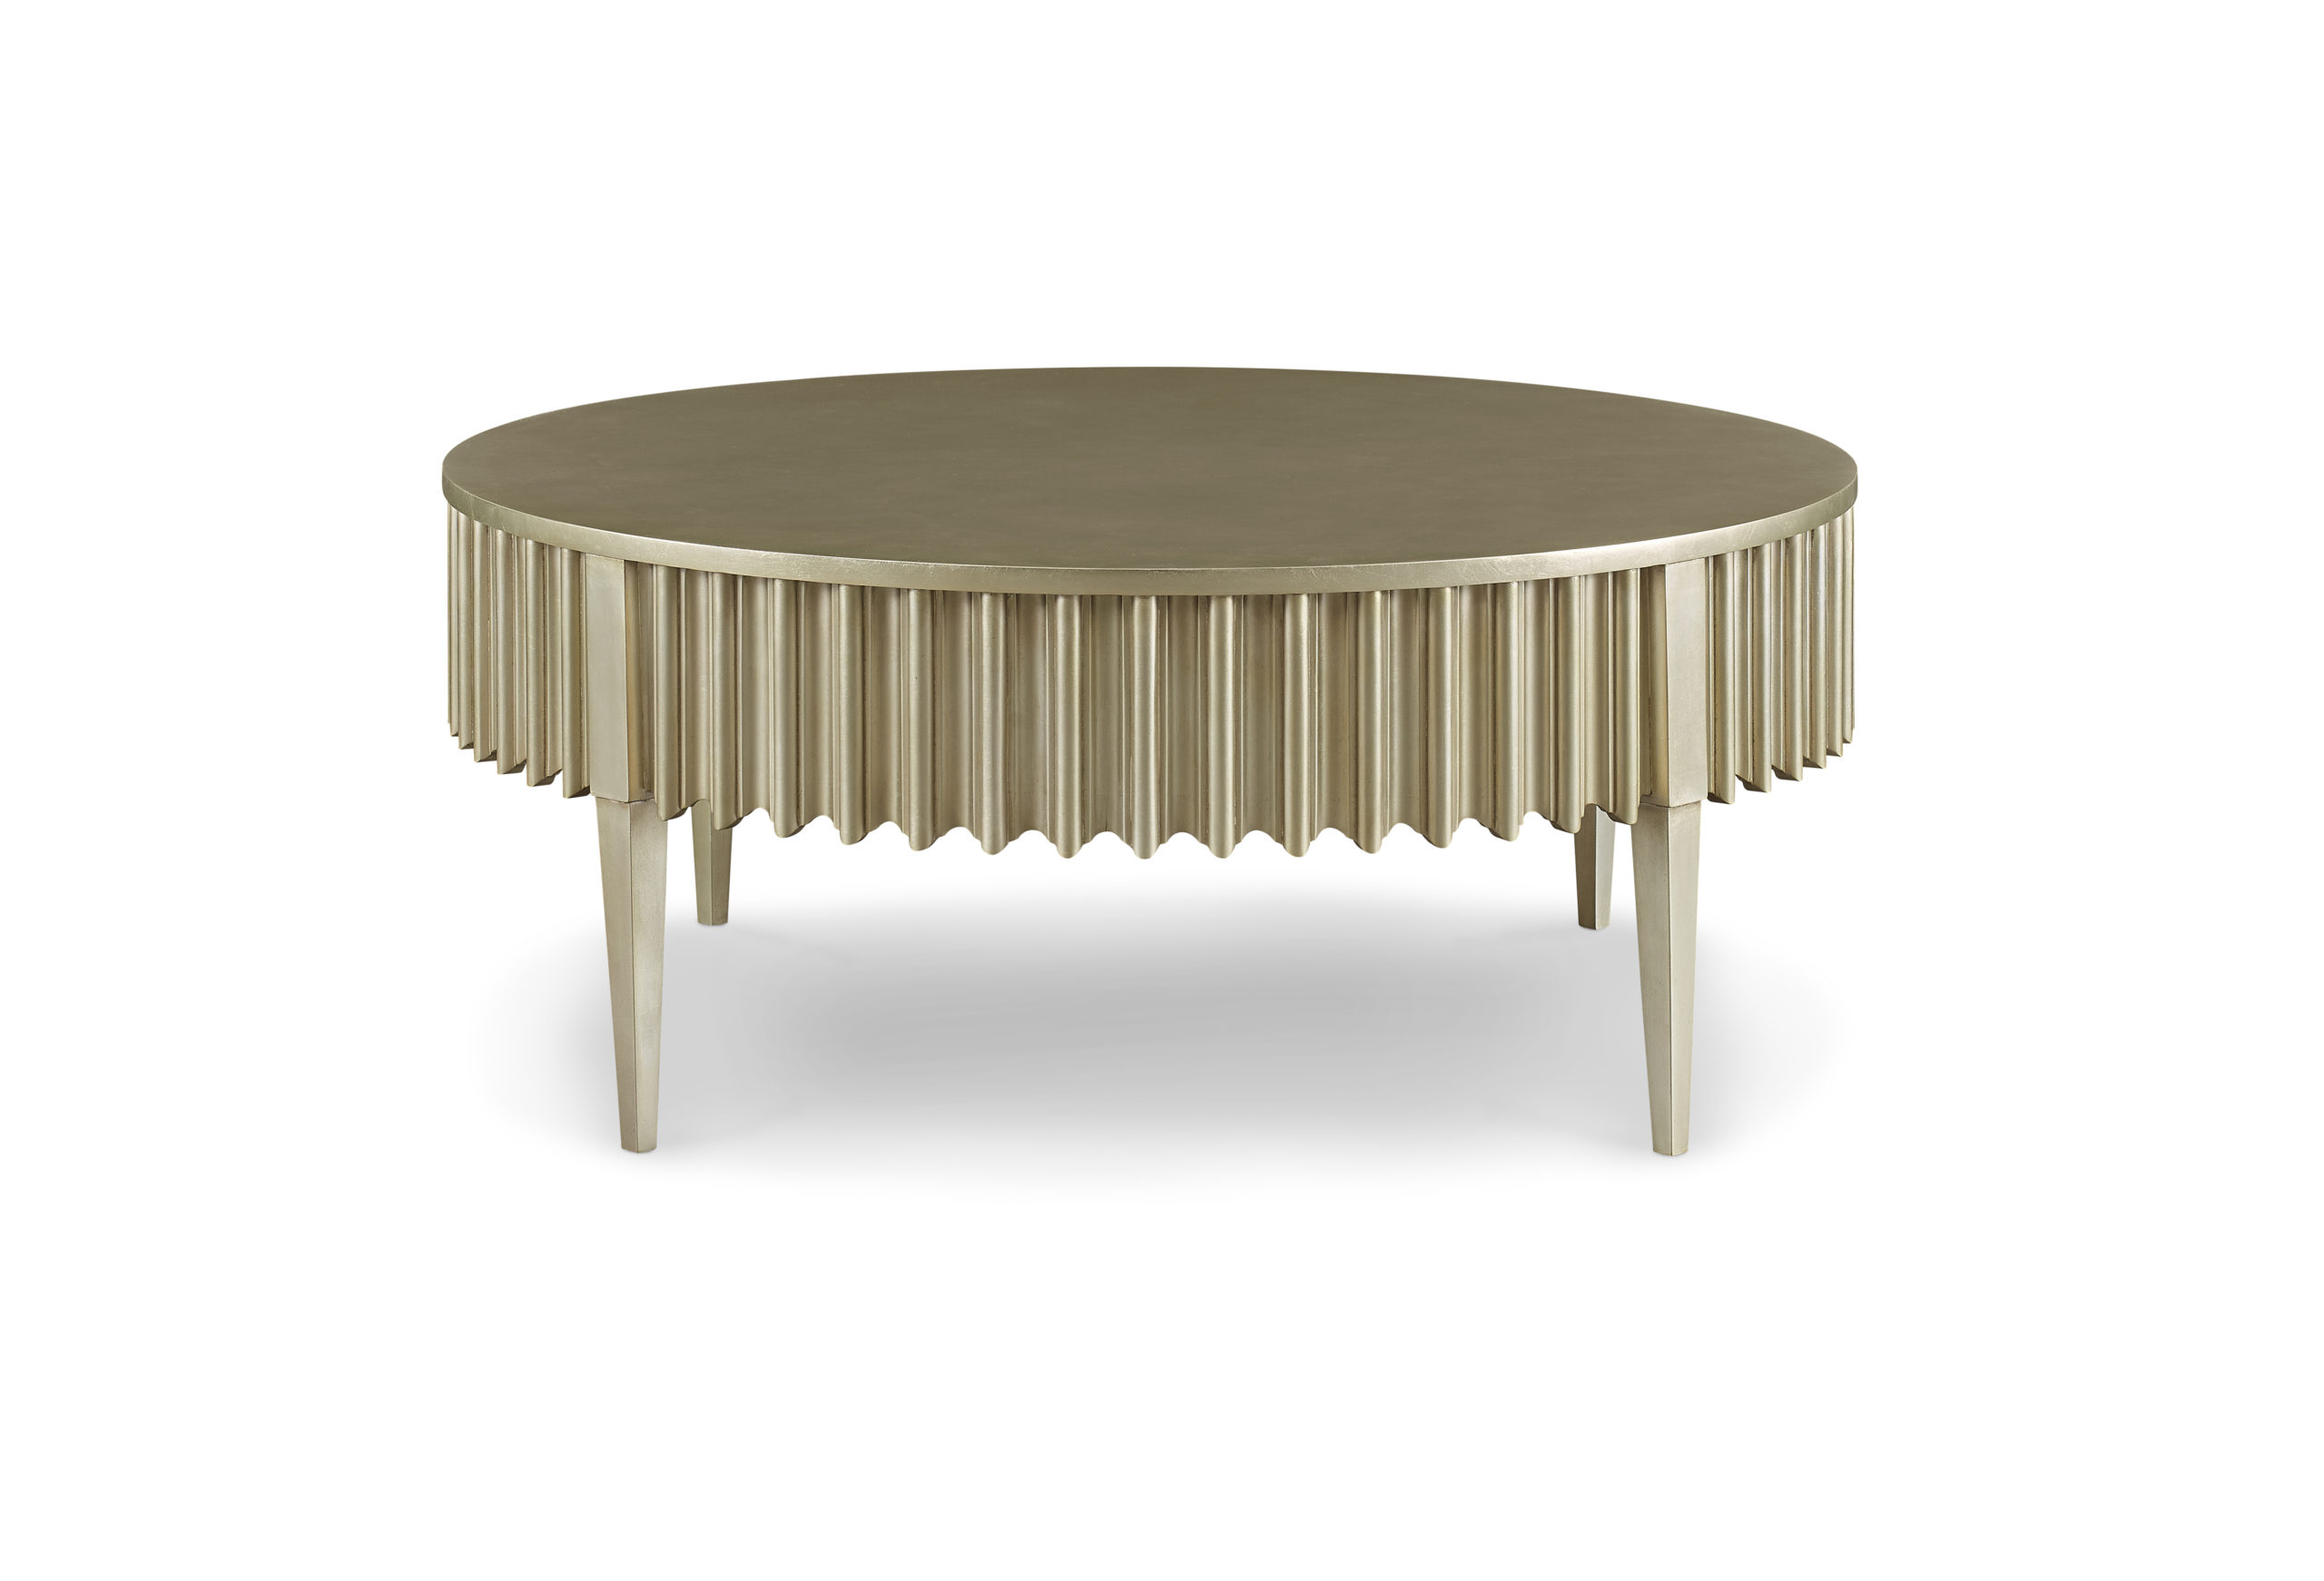 Baker_products_WNWN_reese_cocktail_table_BAA3253_FRONT-scaled-2